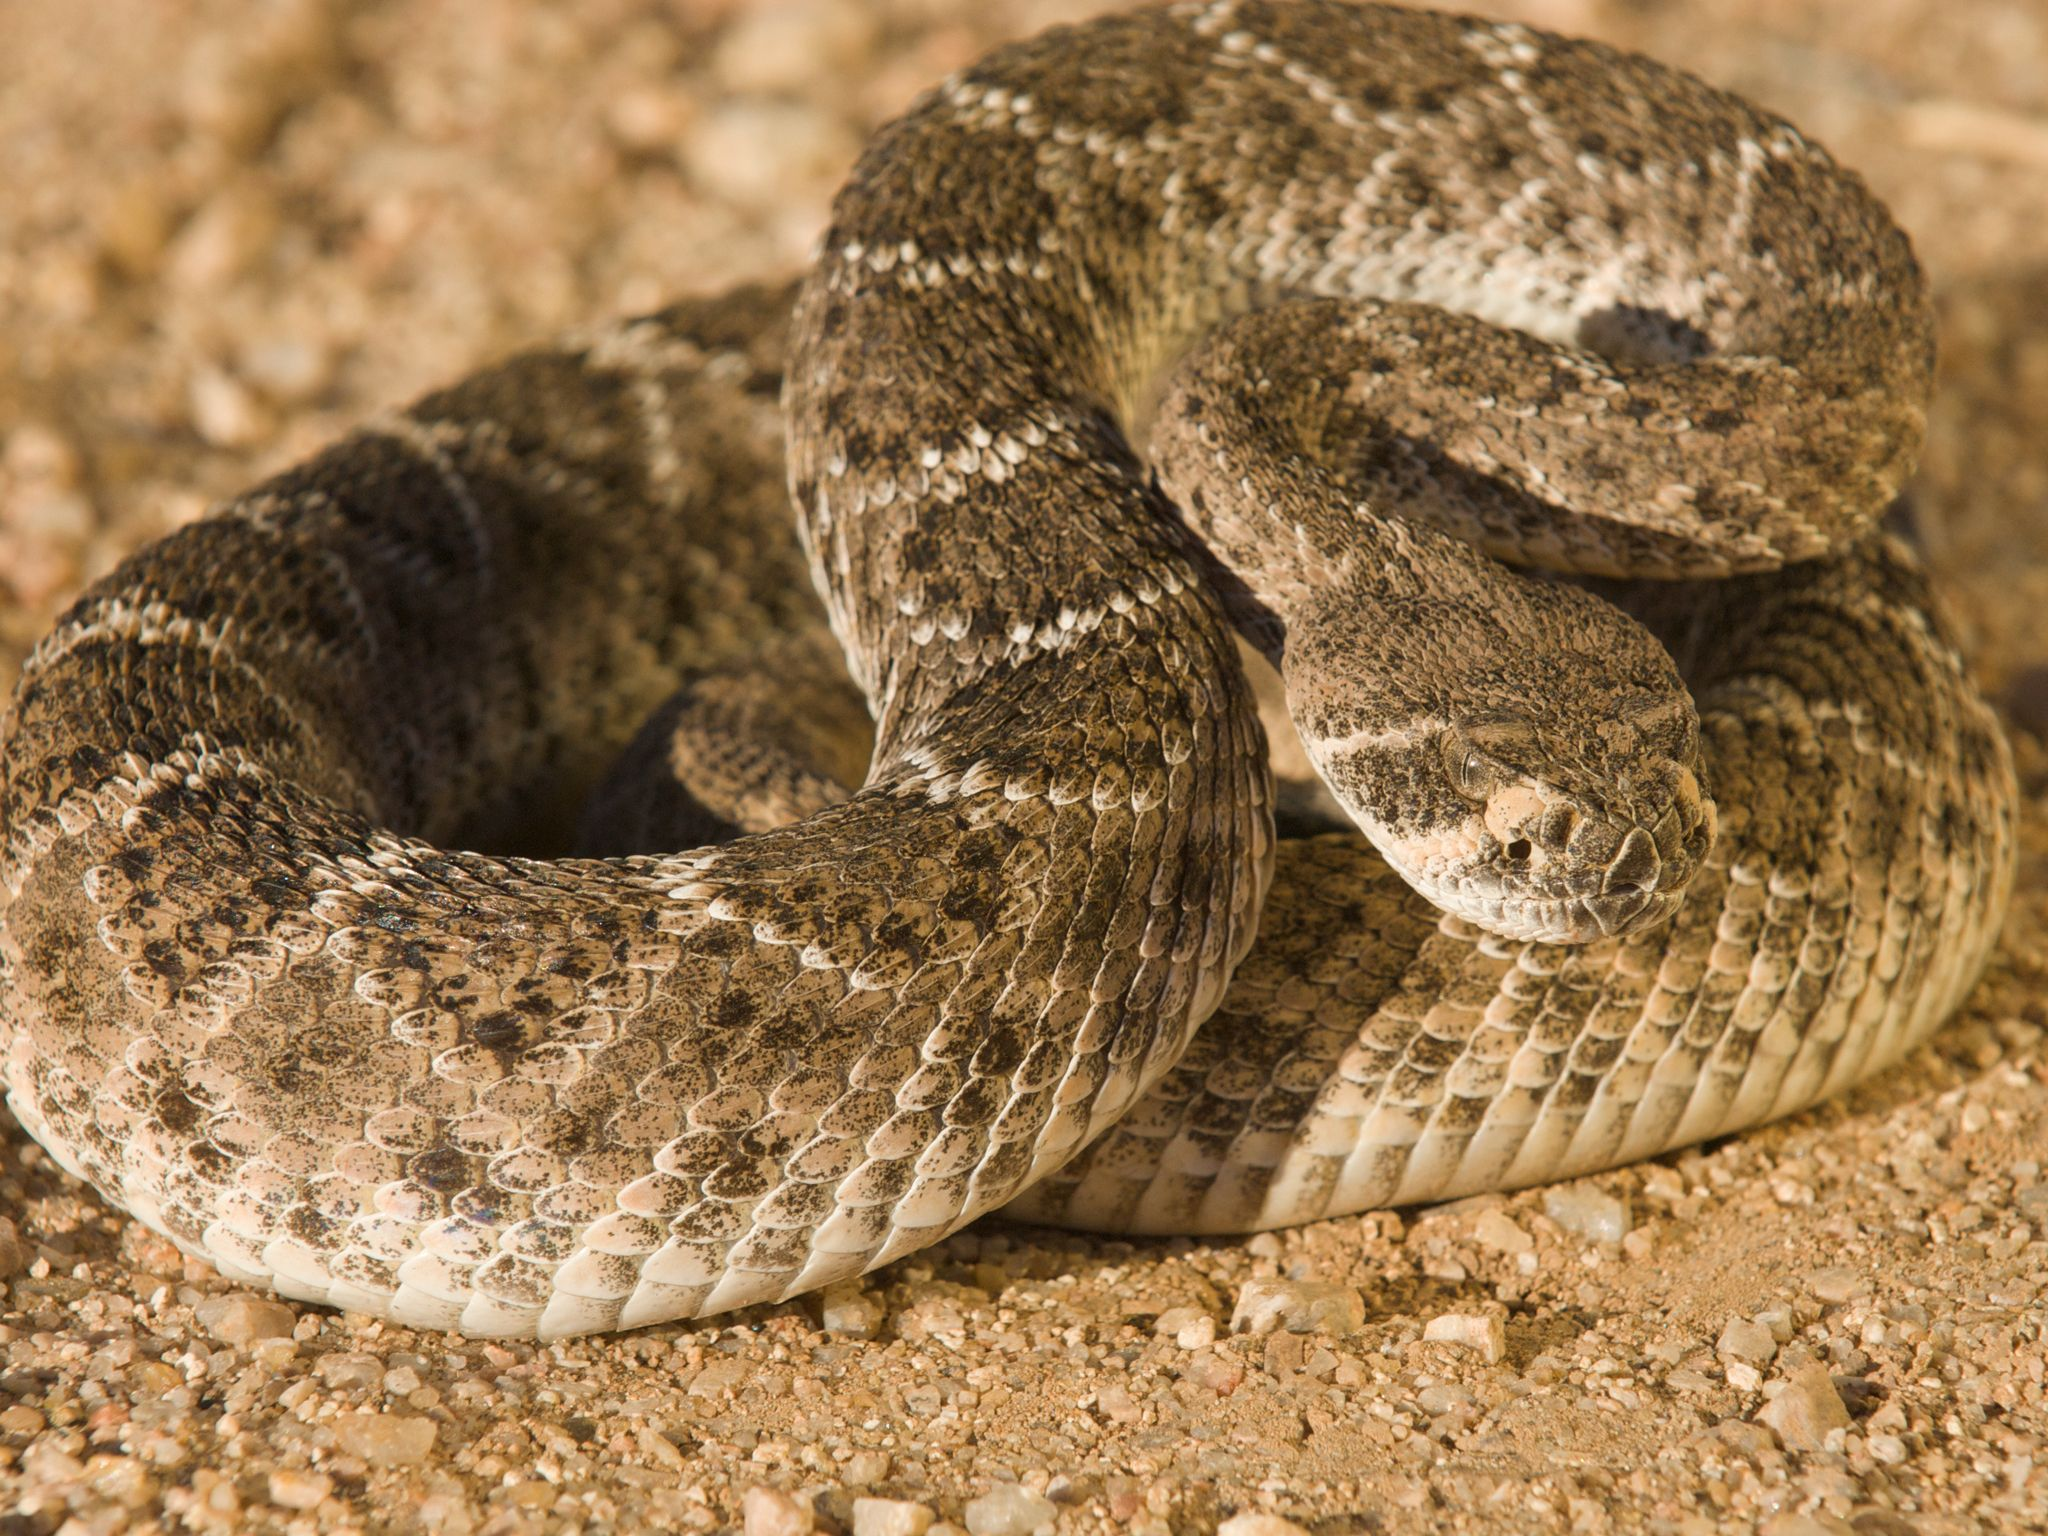 A Diamondback Rattlesnake Coiled Ready To Strike Rattlesnake